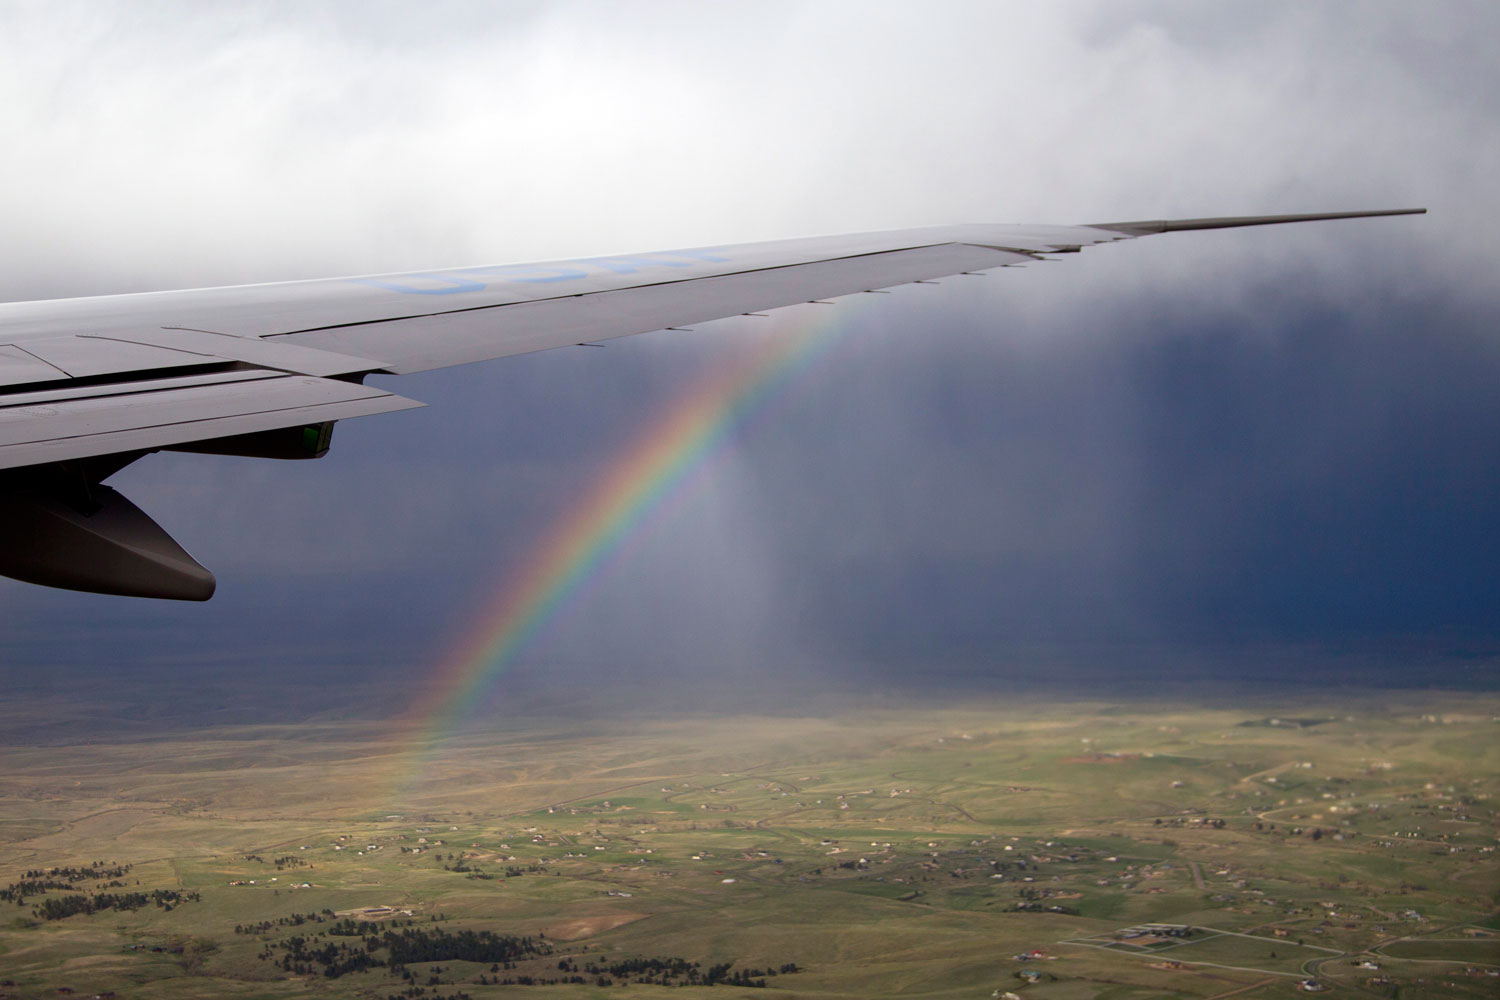 An Effective Second Term                               April 24, 2012. A rainbow is seen off the wing Air Force One as it flies over Colorado with President Barack Obama aboard.